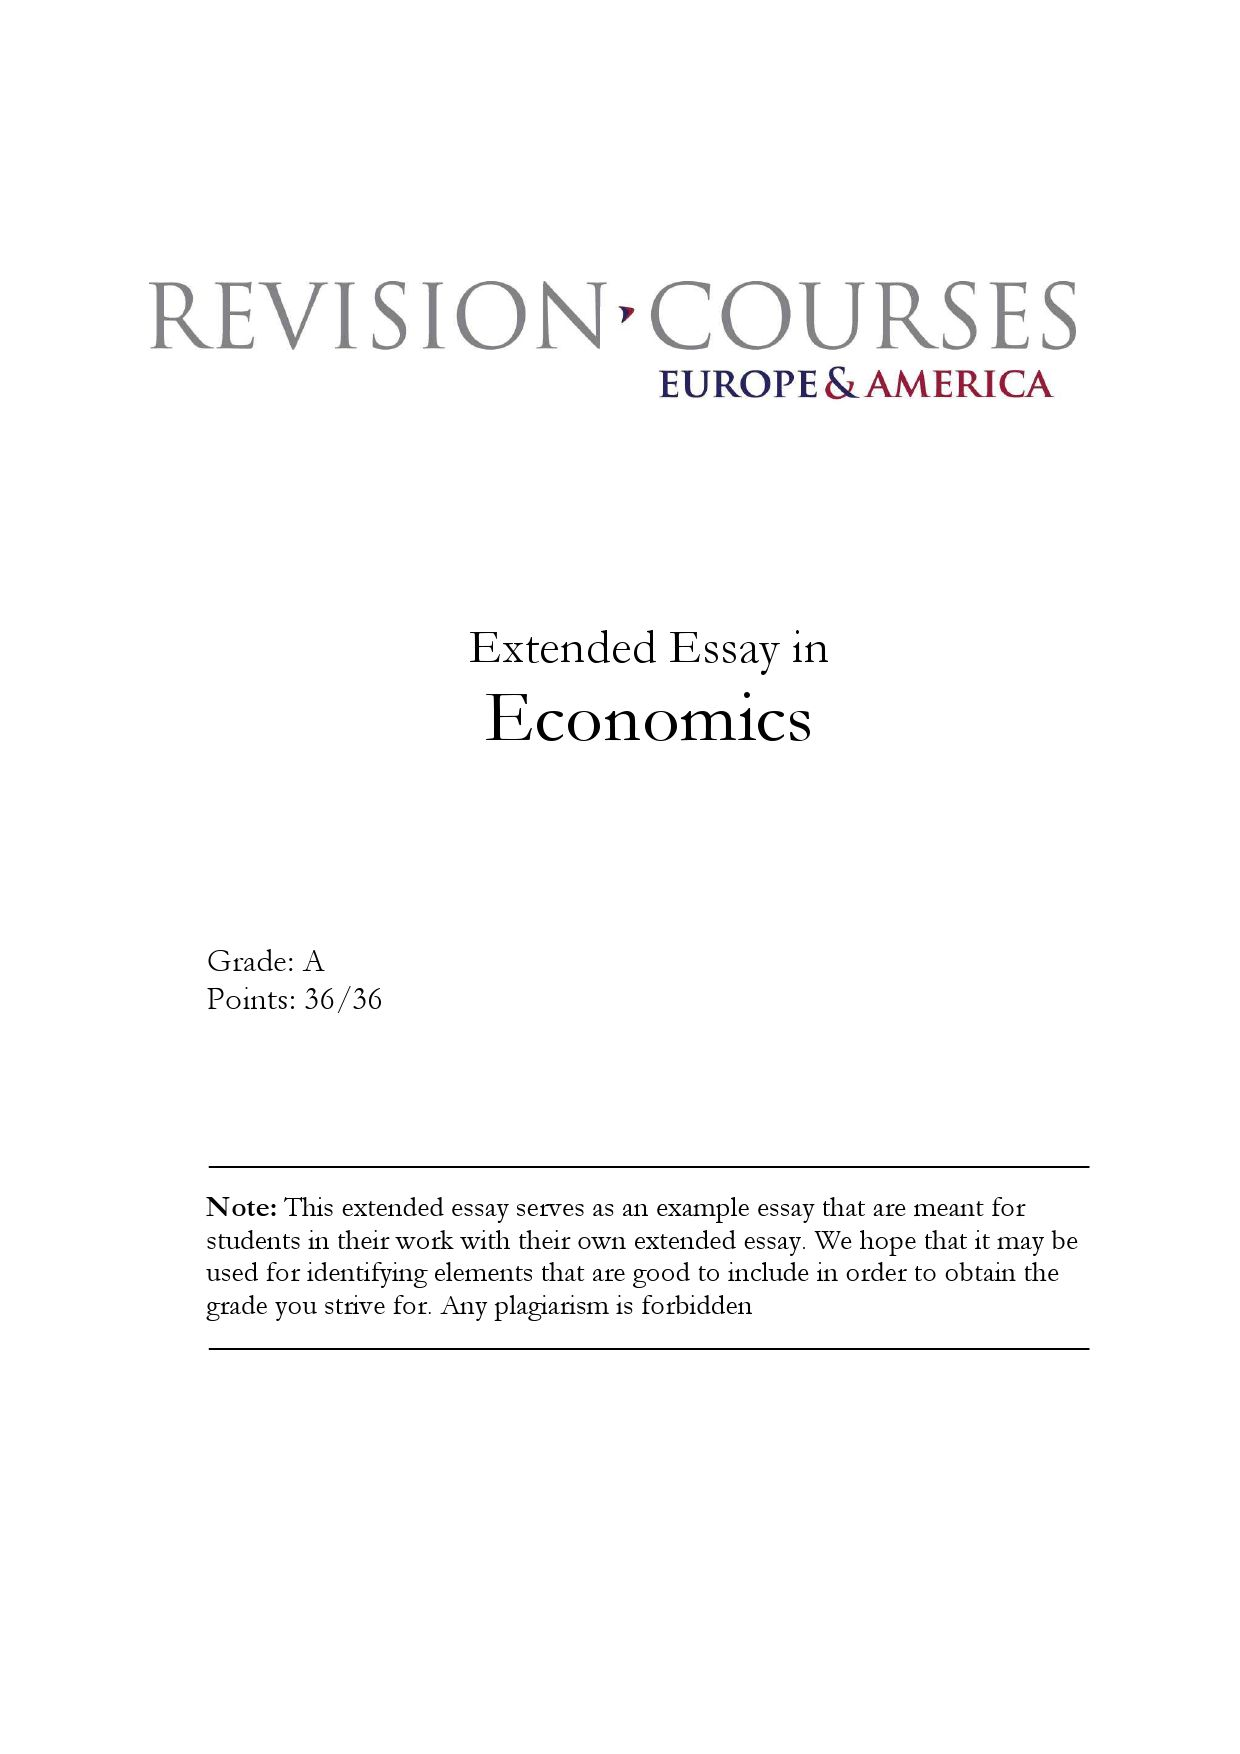 extended essay example resume cover letter for nurses resumes extended essay in economics by revision courses europe america page 1 extended essay economics